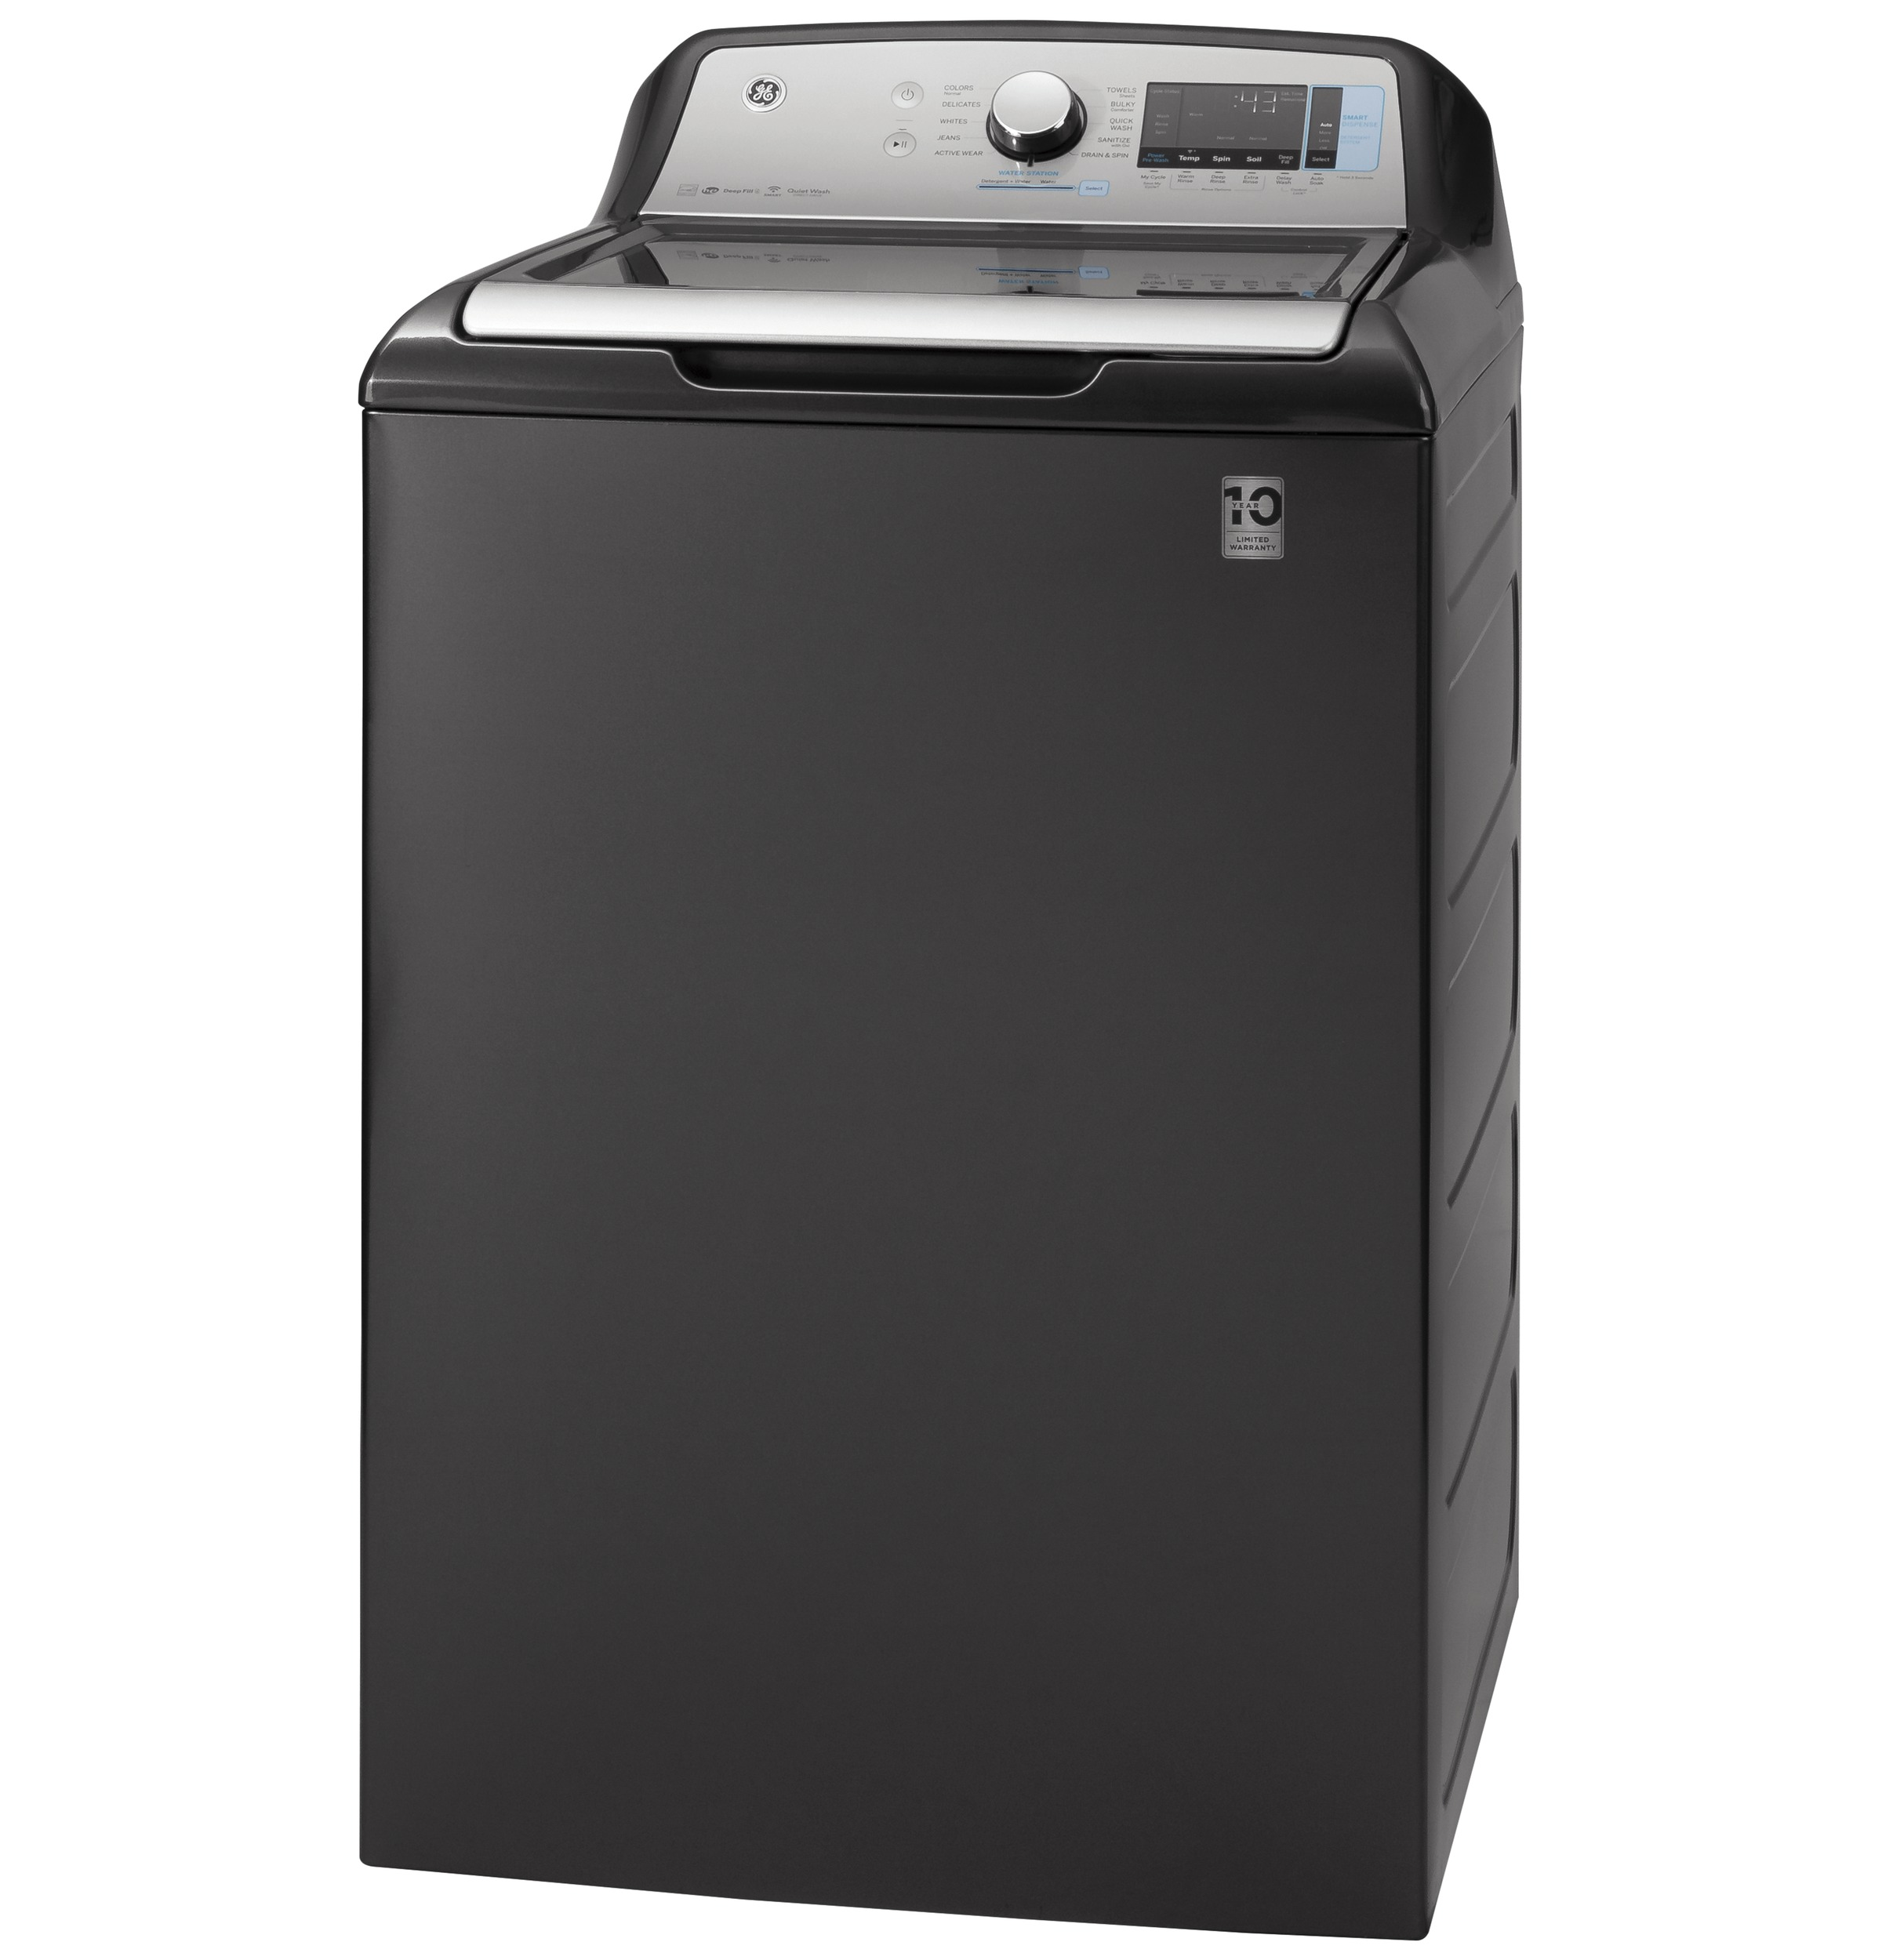 Model: GTW845CPNDG   GE GE® 5.0  cu. ft. Capacity Smart Washer with Sanitize w/Oxi and SmartDispense